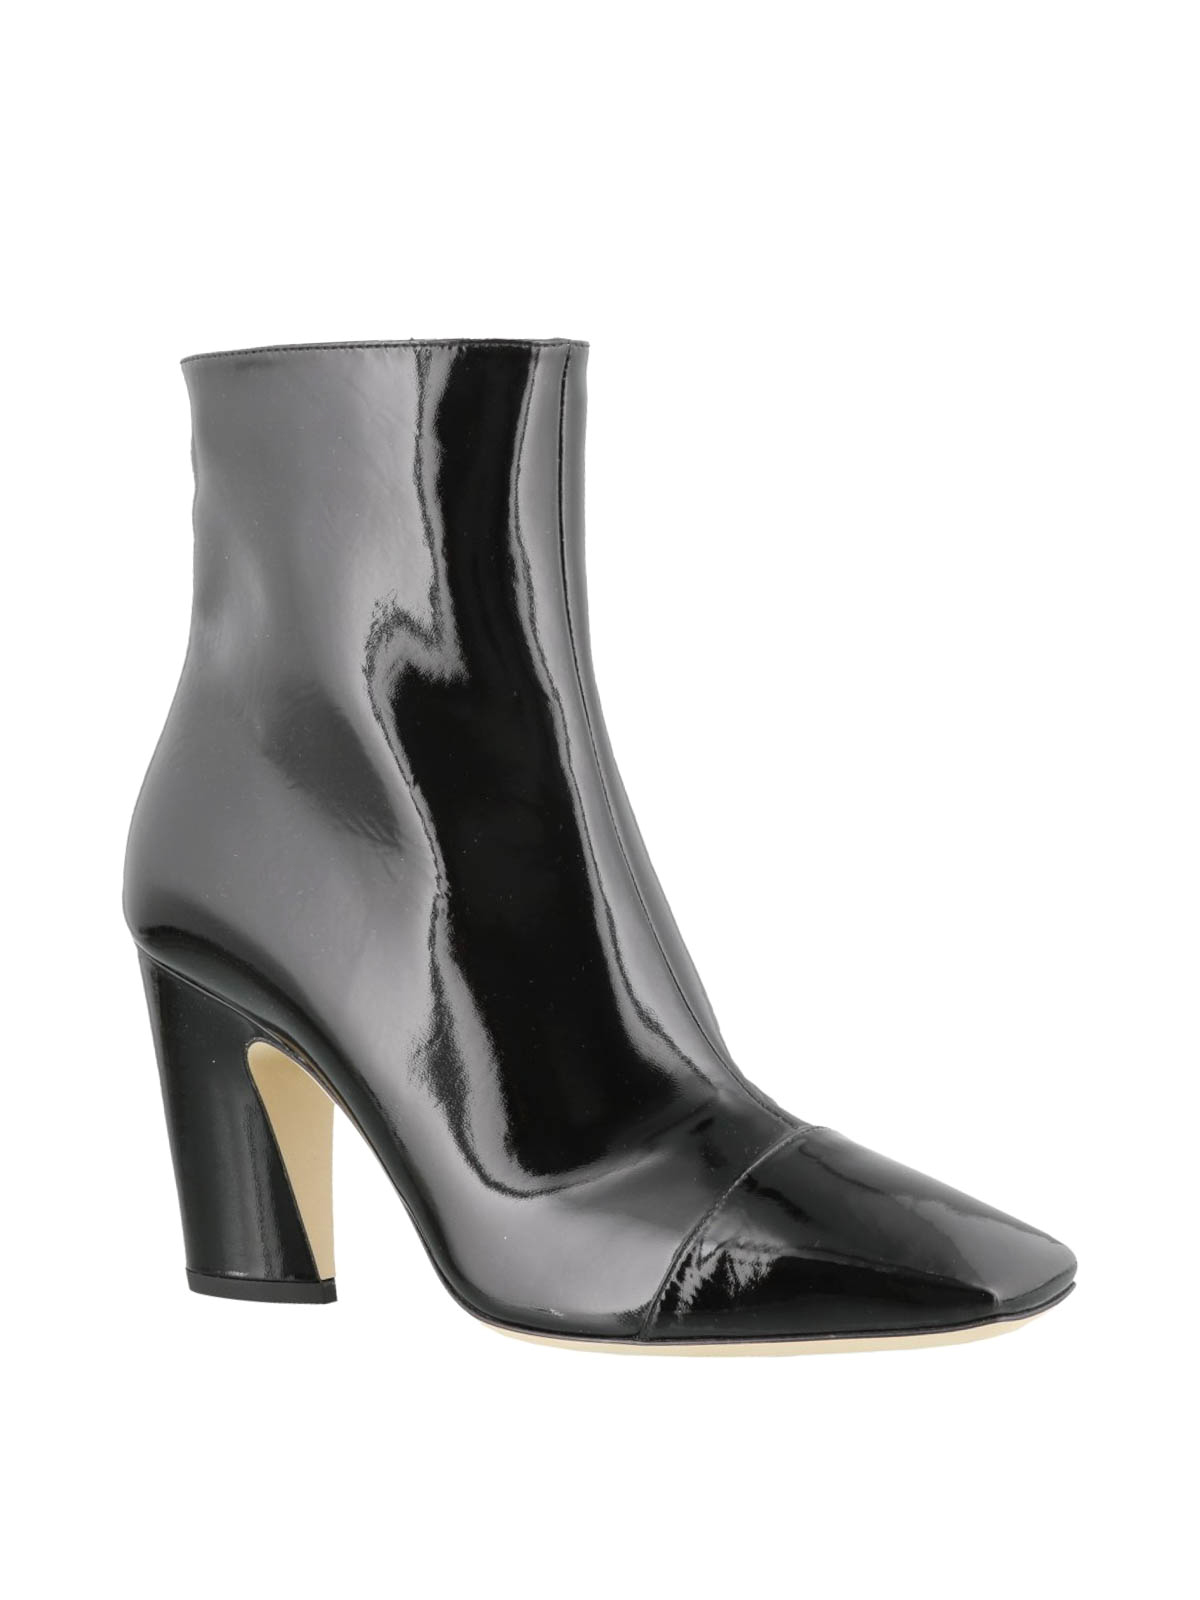 389c4adae26 Jimmy Choo - Mirren black patent leather booties - ankle boots ...